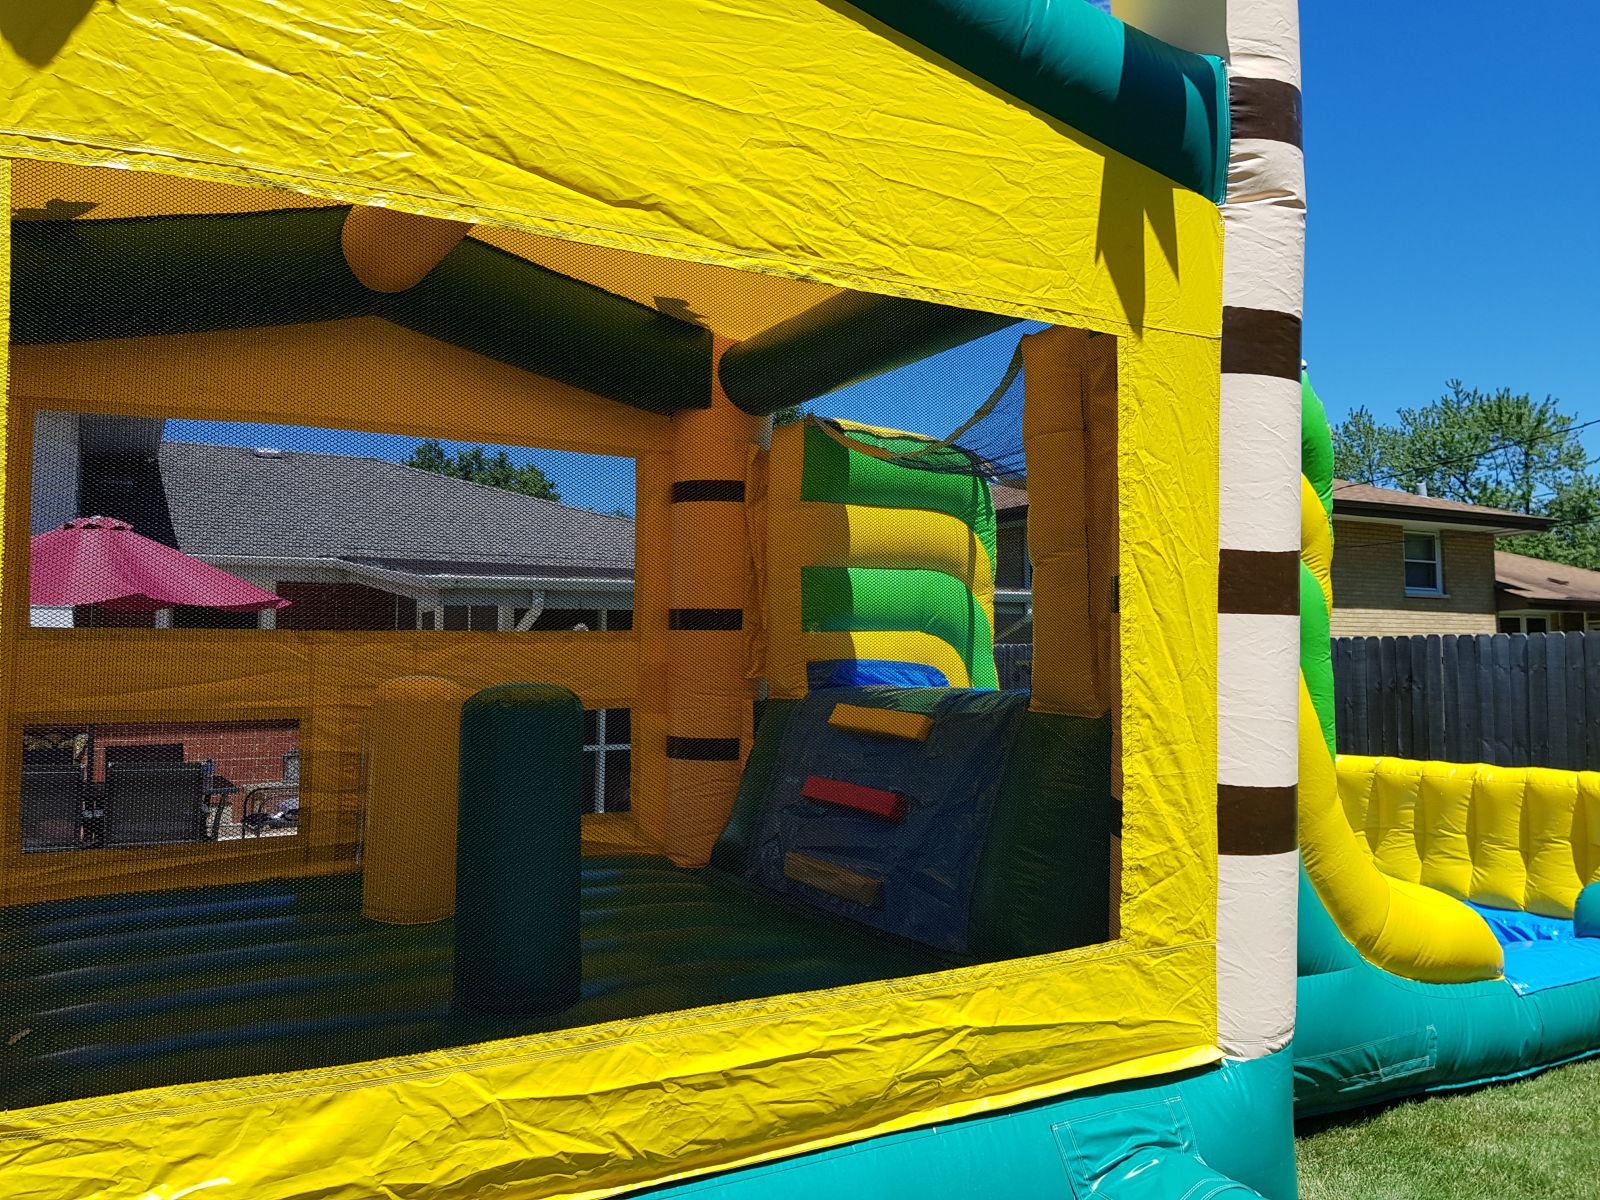 Bounce House With Slide and Pool, also Called an Inflatable Rental. Rent this inflatable for your party!